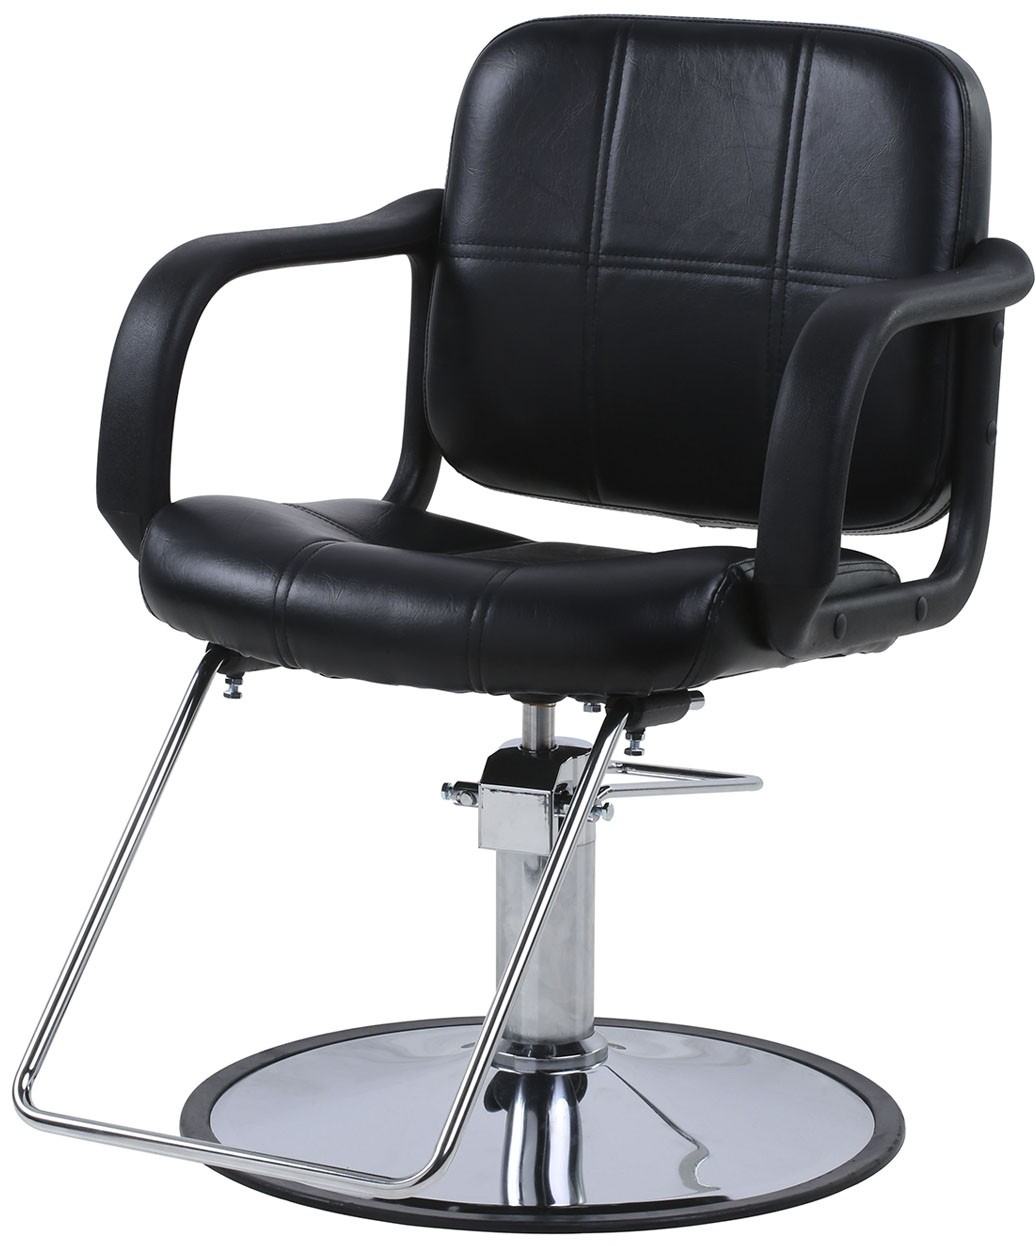 Pedicure Chair Parts Hydraulic Salon Styling Chair Chris Styling Chair And Pump